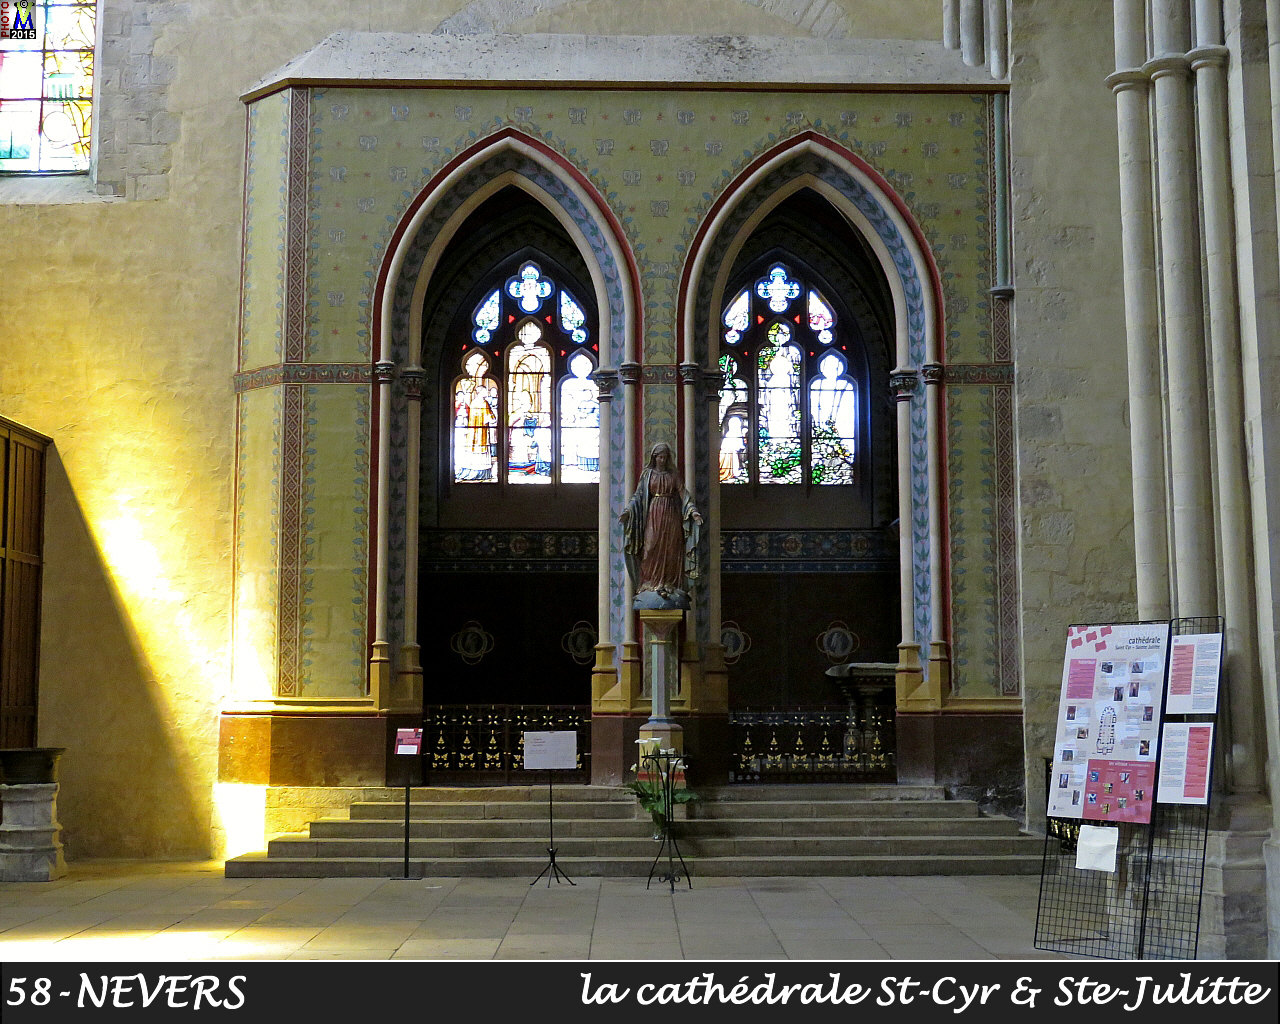 58NEVERS-cathedrale_221.jpg